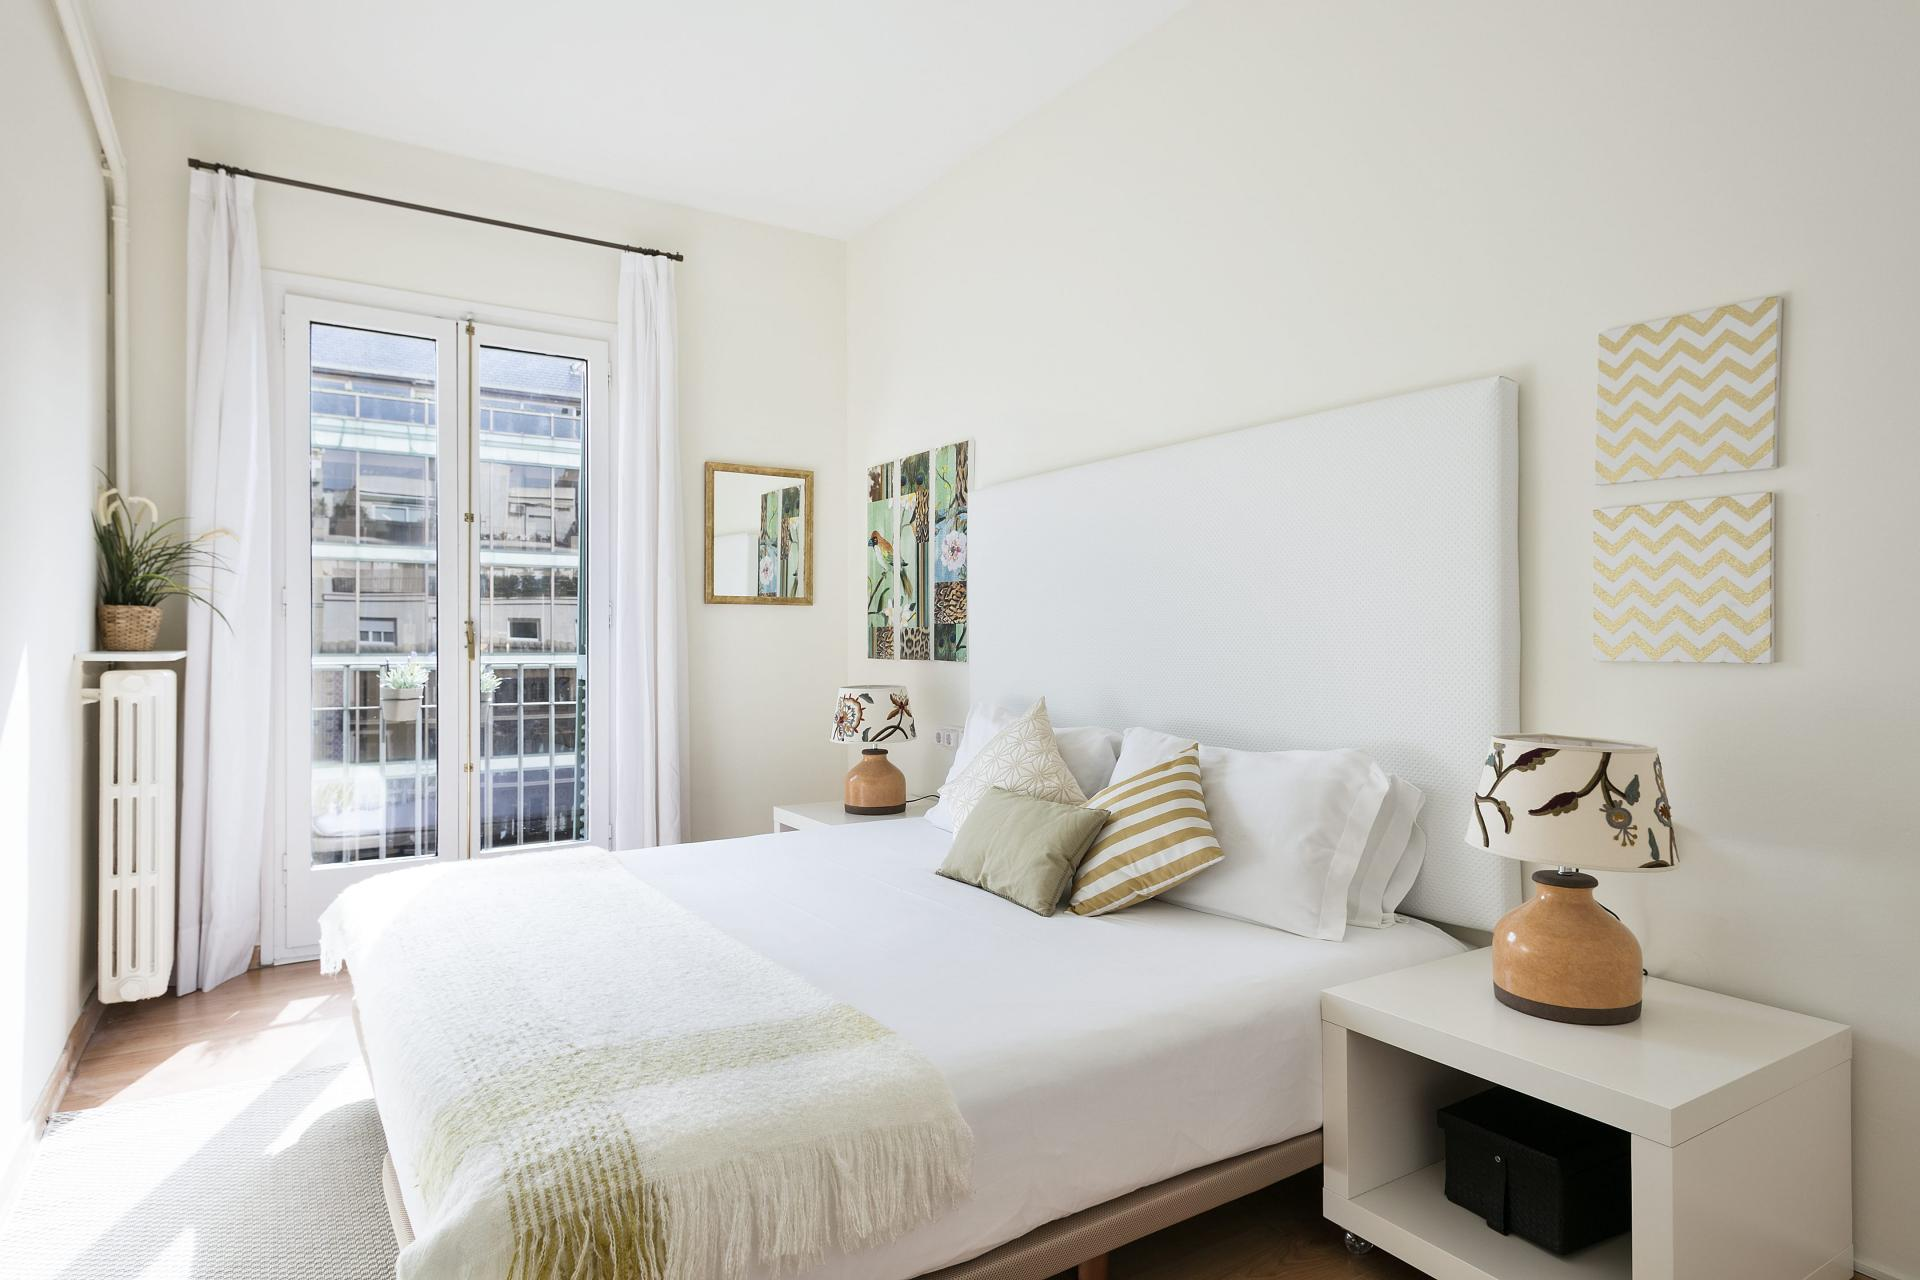 Bedroom at Sunny Serviced Apartments, Eixample, Barcelona - Citybase Apartments